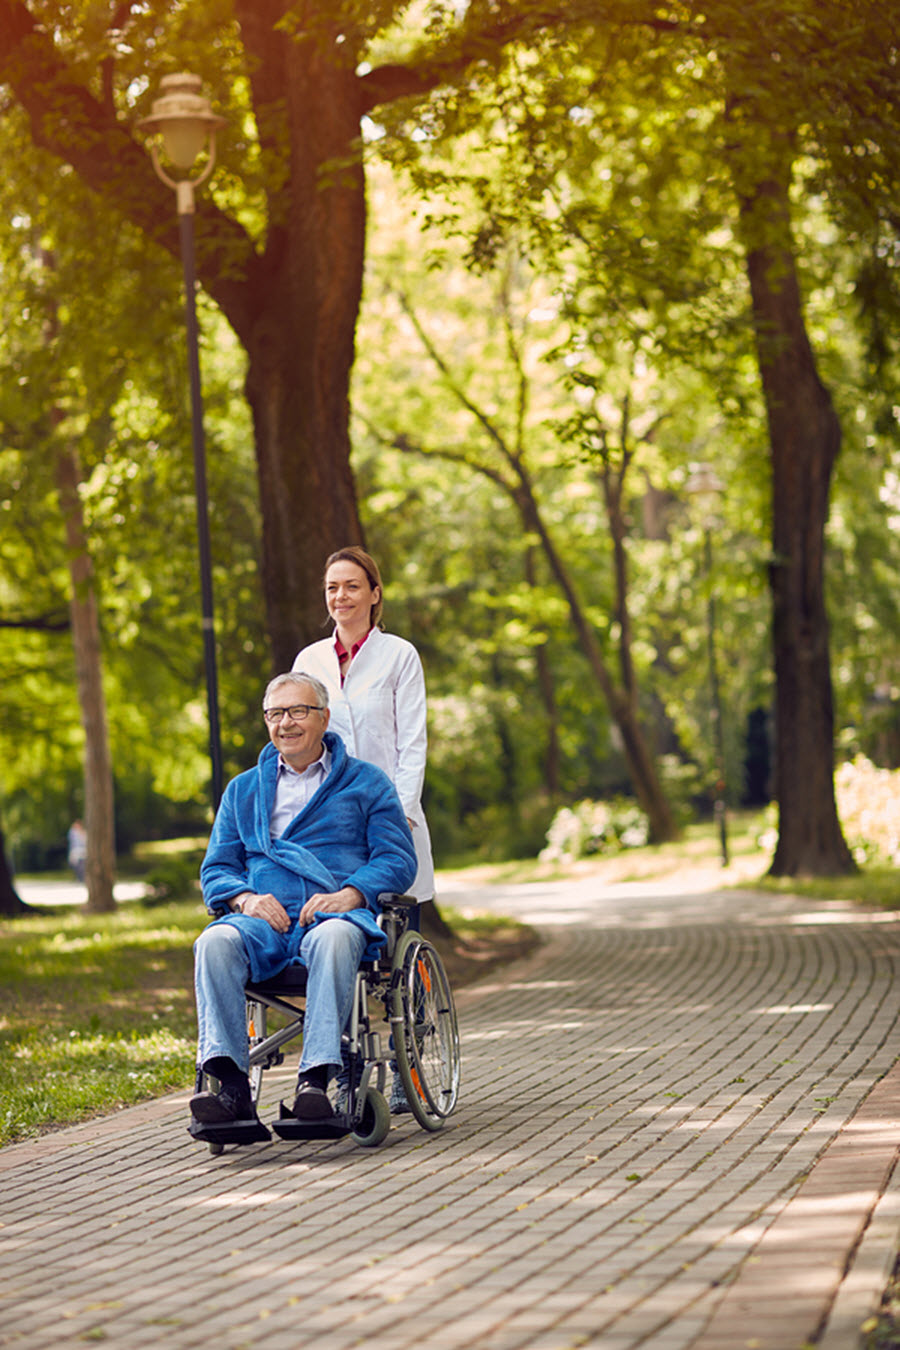 bigstock-elderly-man-on-wheelchair-with-185312374.jpg